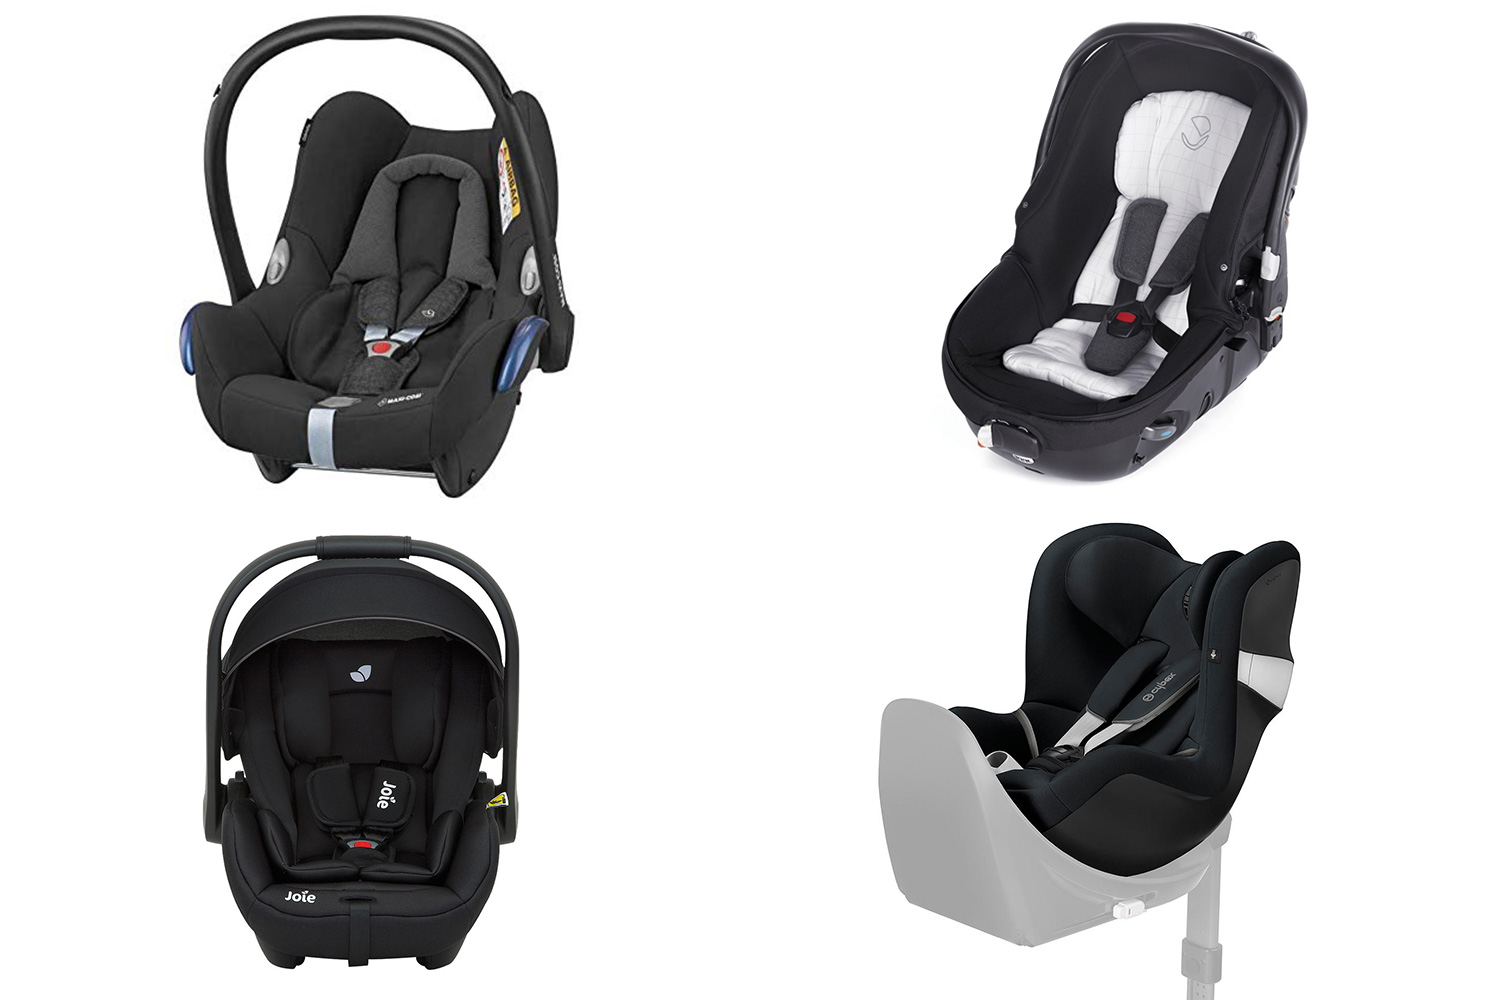 Joie Baby Car Seat Usa Best Newborn Car Seat 2019 The Sun Uk